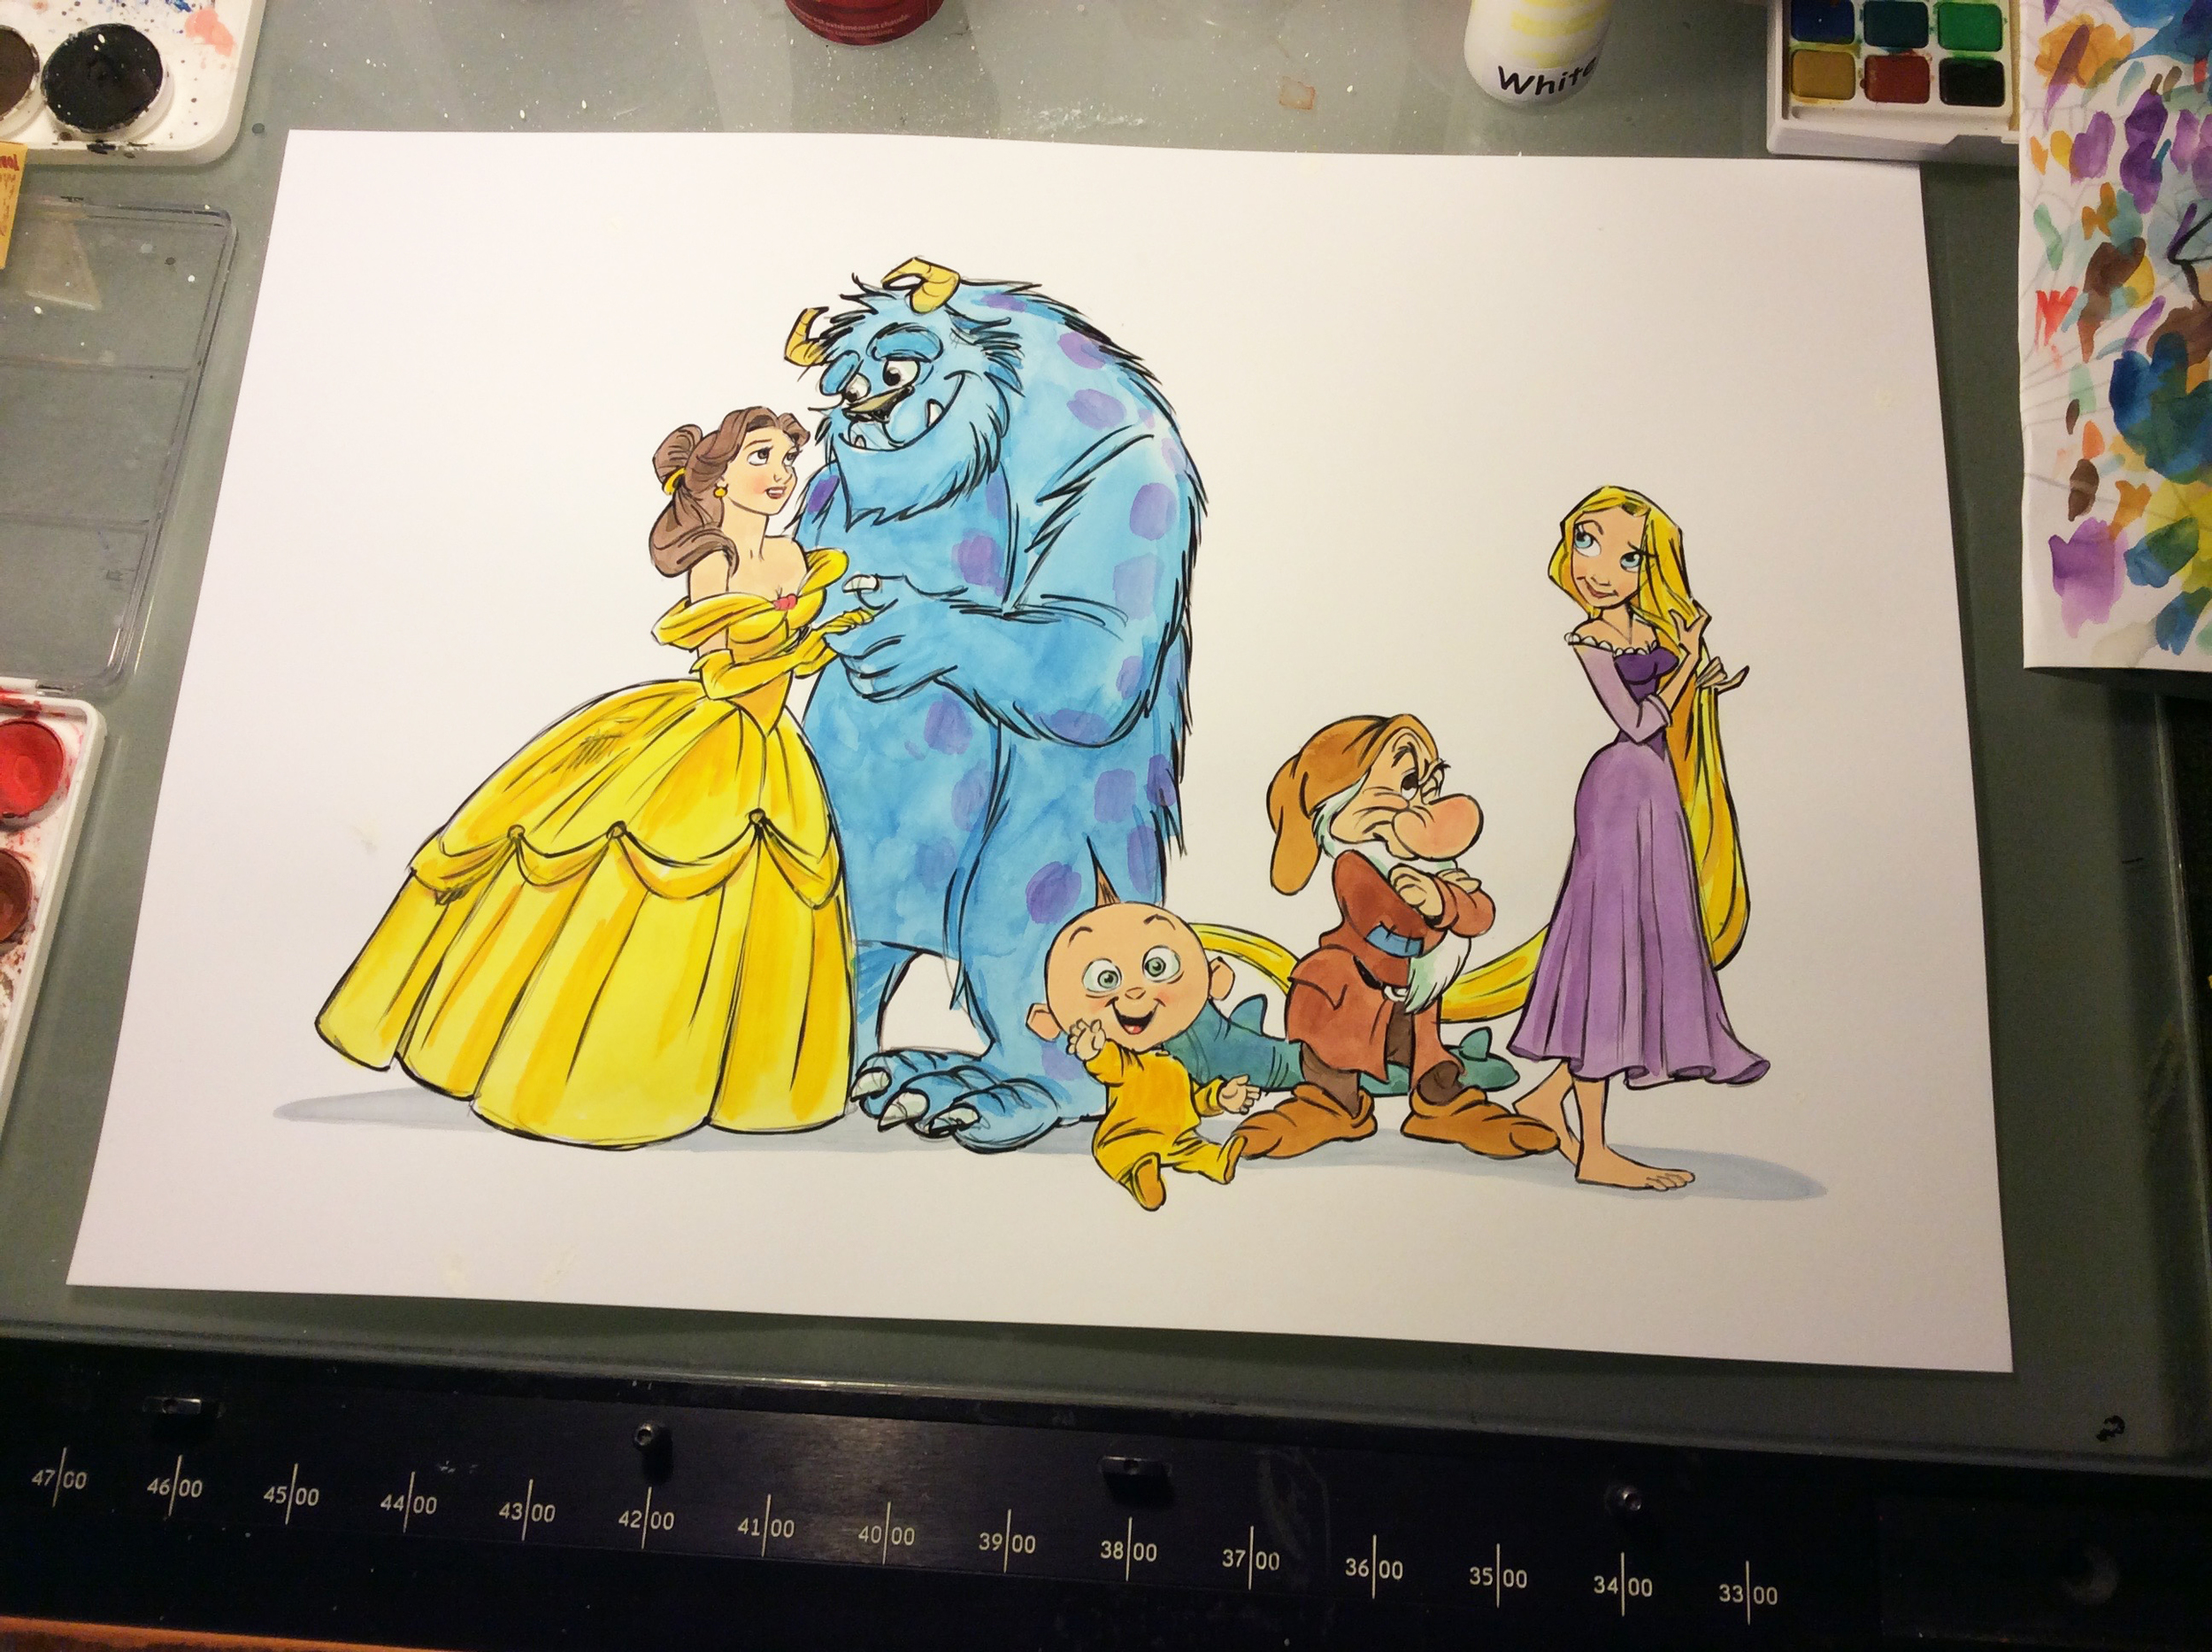 It was fun to create this cartoon family portrait for an animation artist and his family.